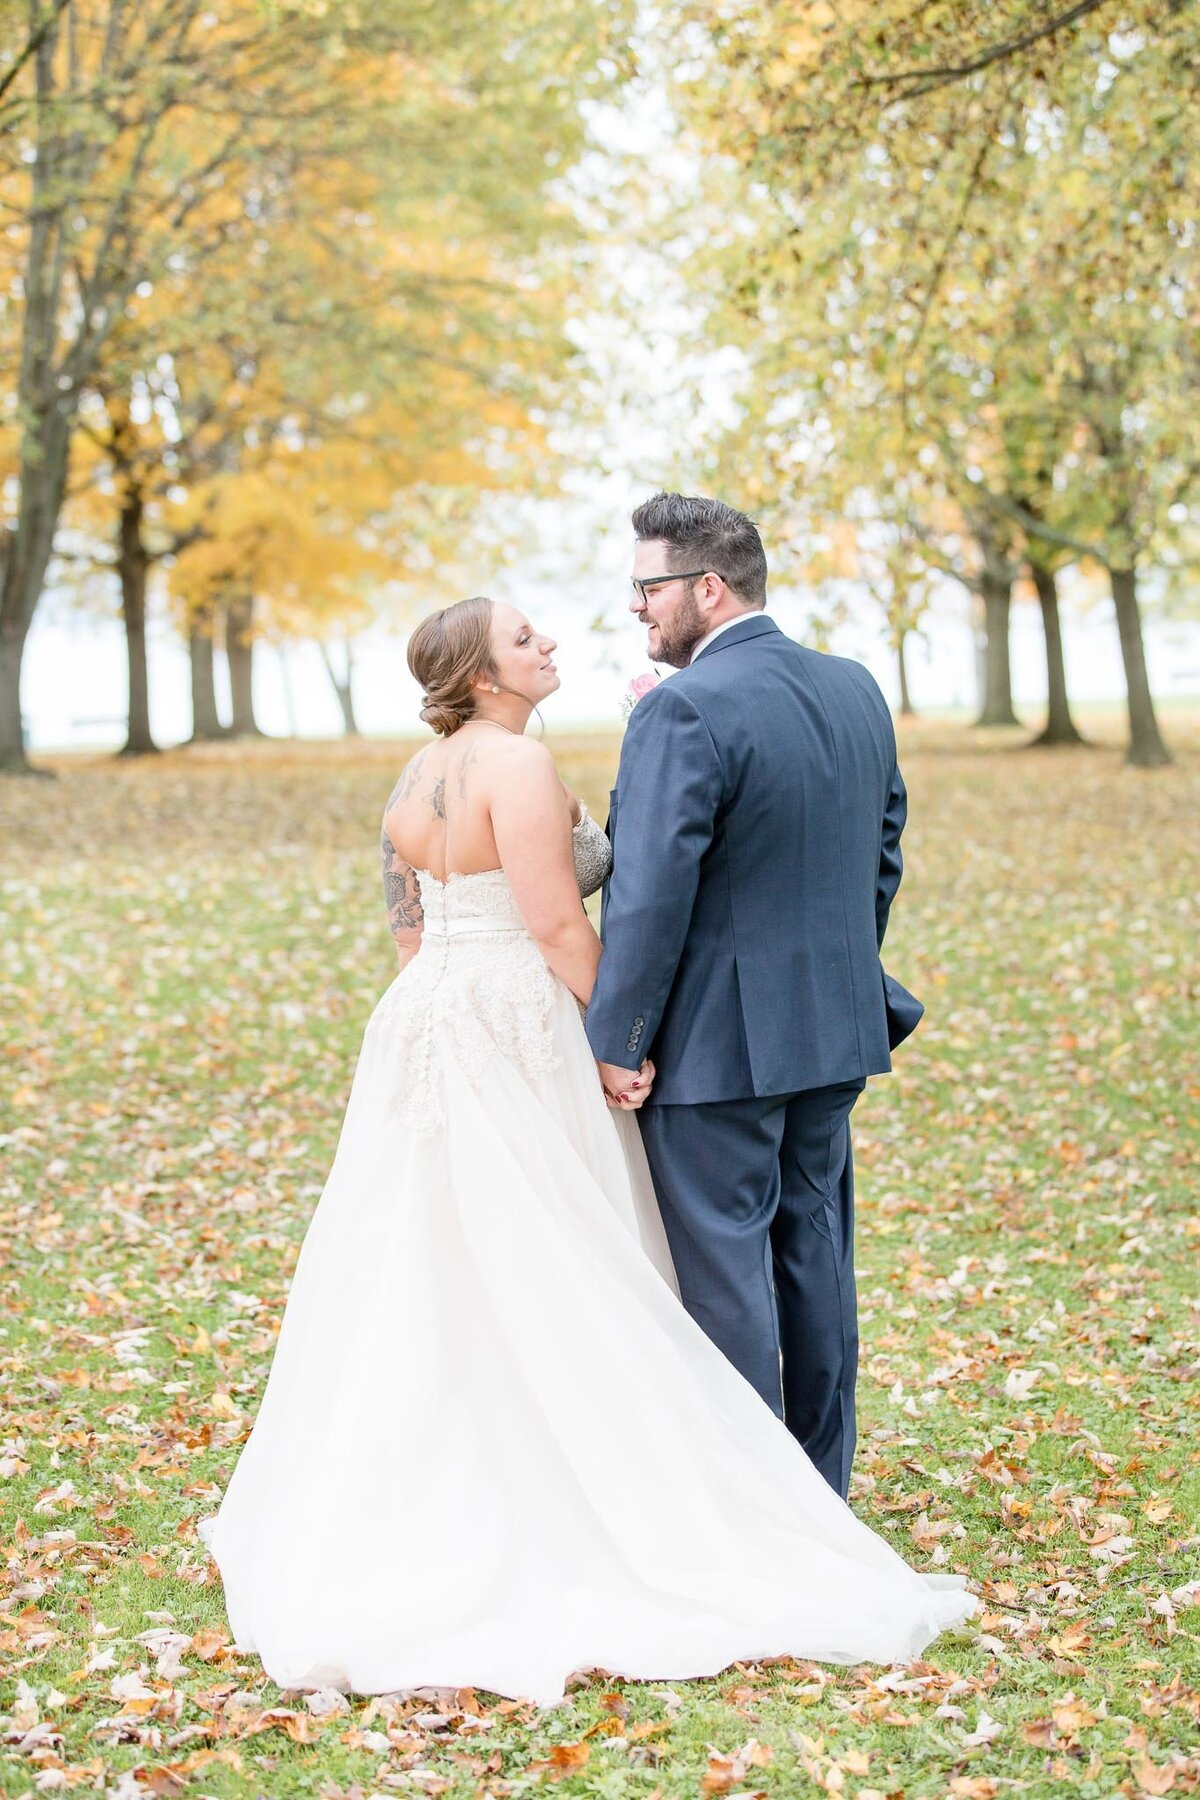 Rachel-Elise-Photography-Syracuse-New-York-Wedding-Photographer-56